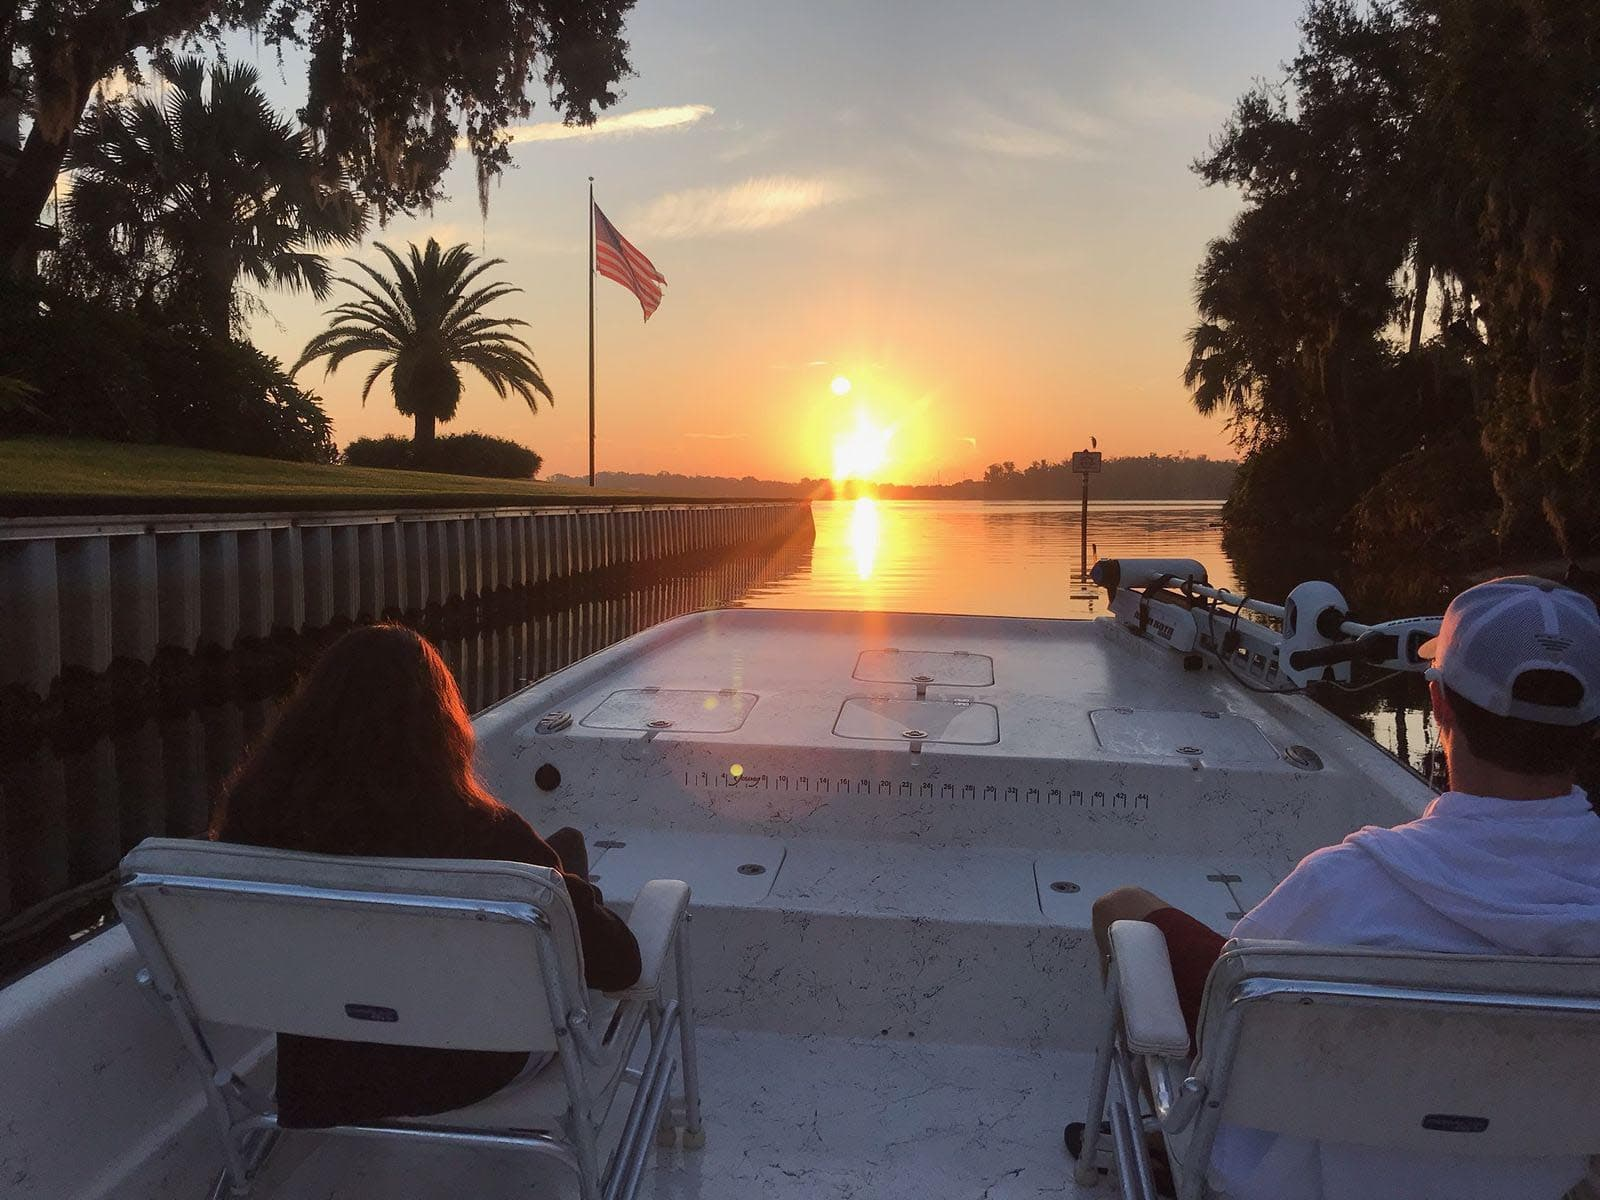 Enjoy a private sunset river cruise along the beautiful waters of the Crystal River area. We start our cruises approximately 90 minutes before sunset to take a scenic tour of Kings Bay where we can see pelicans, white ibis's, ospreys, bald eagles, wild boar, otters, racoons, tarpon and everyone's two favorites, Manatees and Dolphins. This time of day is when nature seems to come alive bringing animals of all kinds out to play. Most of the boat traffic from the day has subsided and makes for a great time to be on the water.